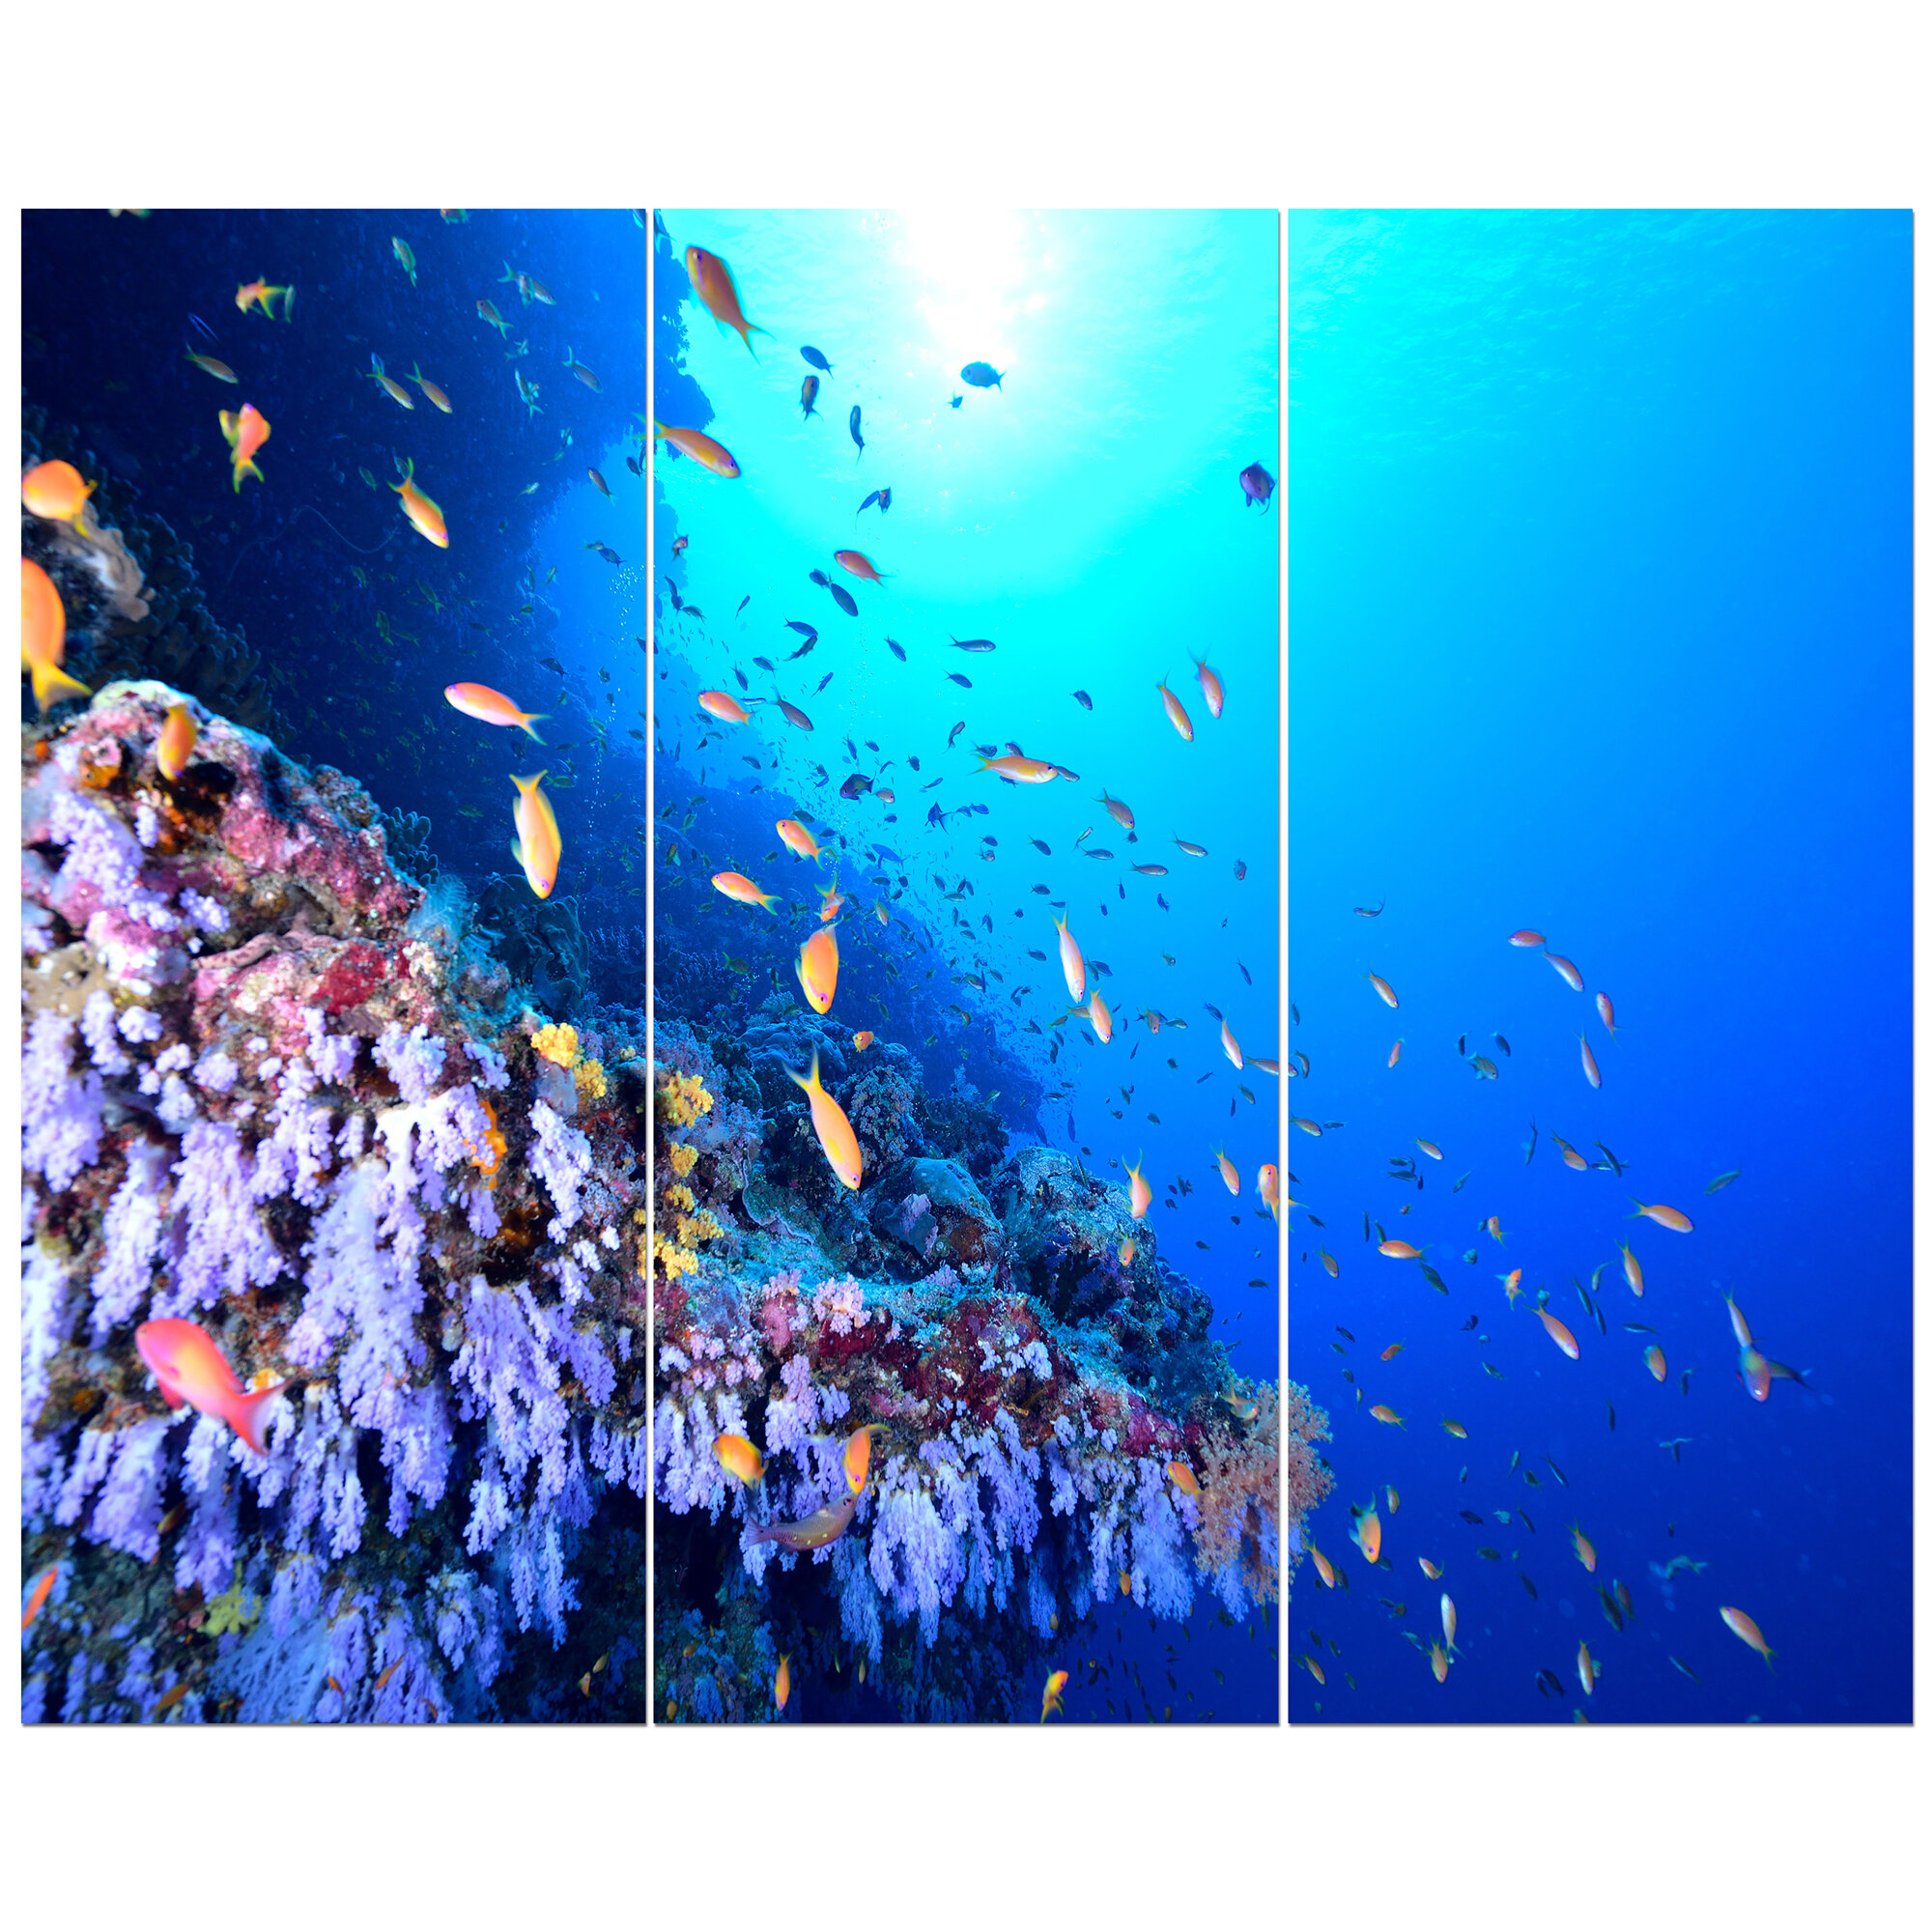 1f4ce484ee54 'Coral Reef with Different Fish Swimming' Photographic Print Multi-Piece  Image on Wrapped Canvas